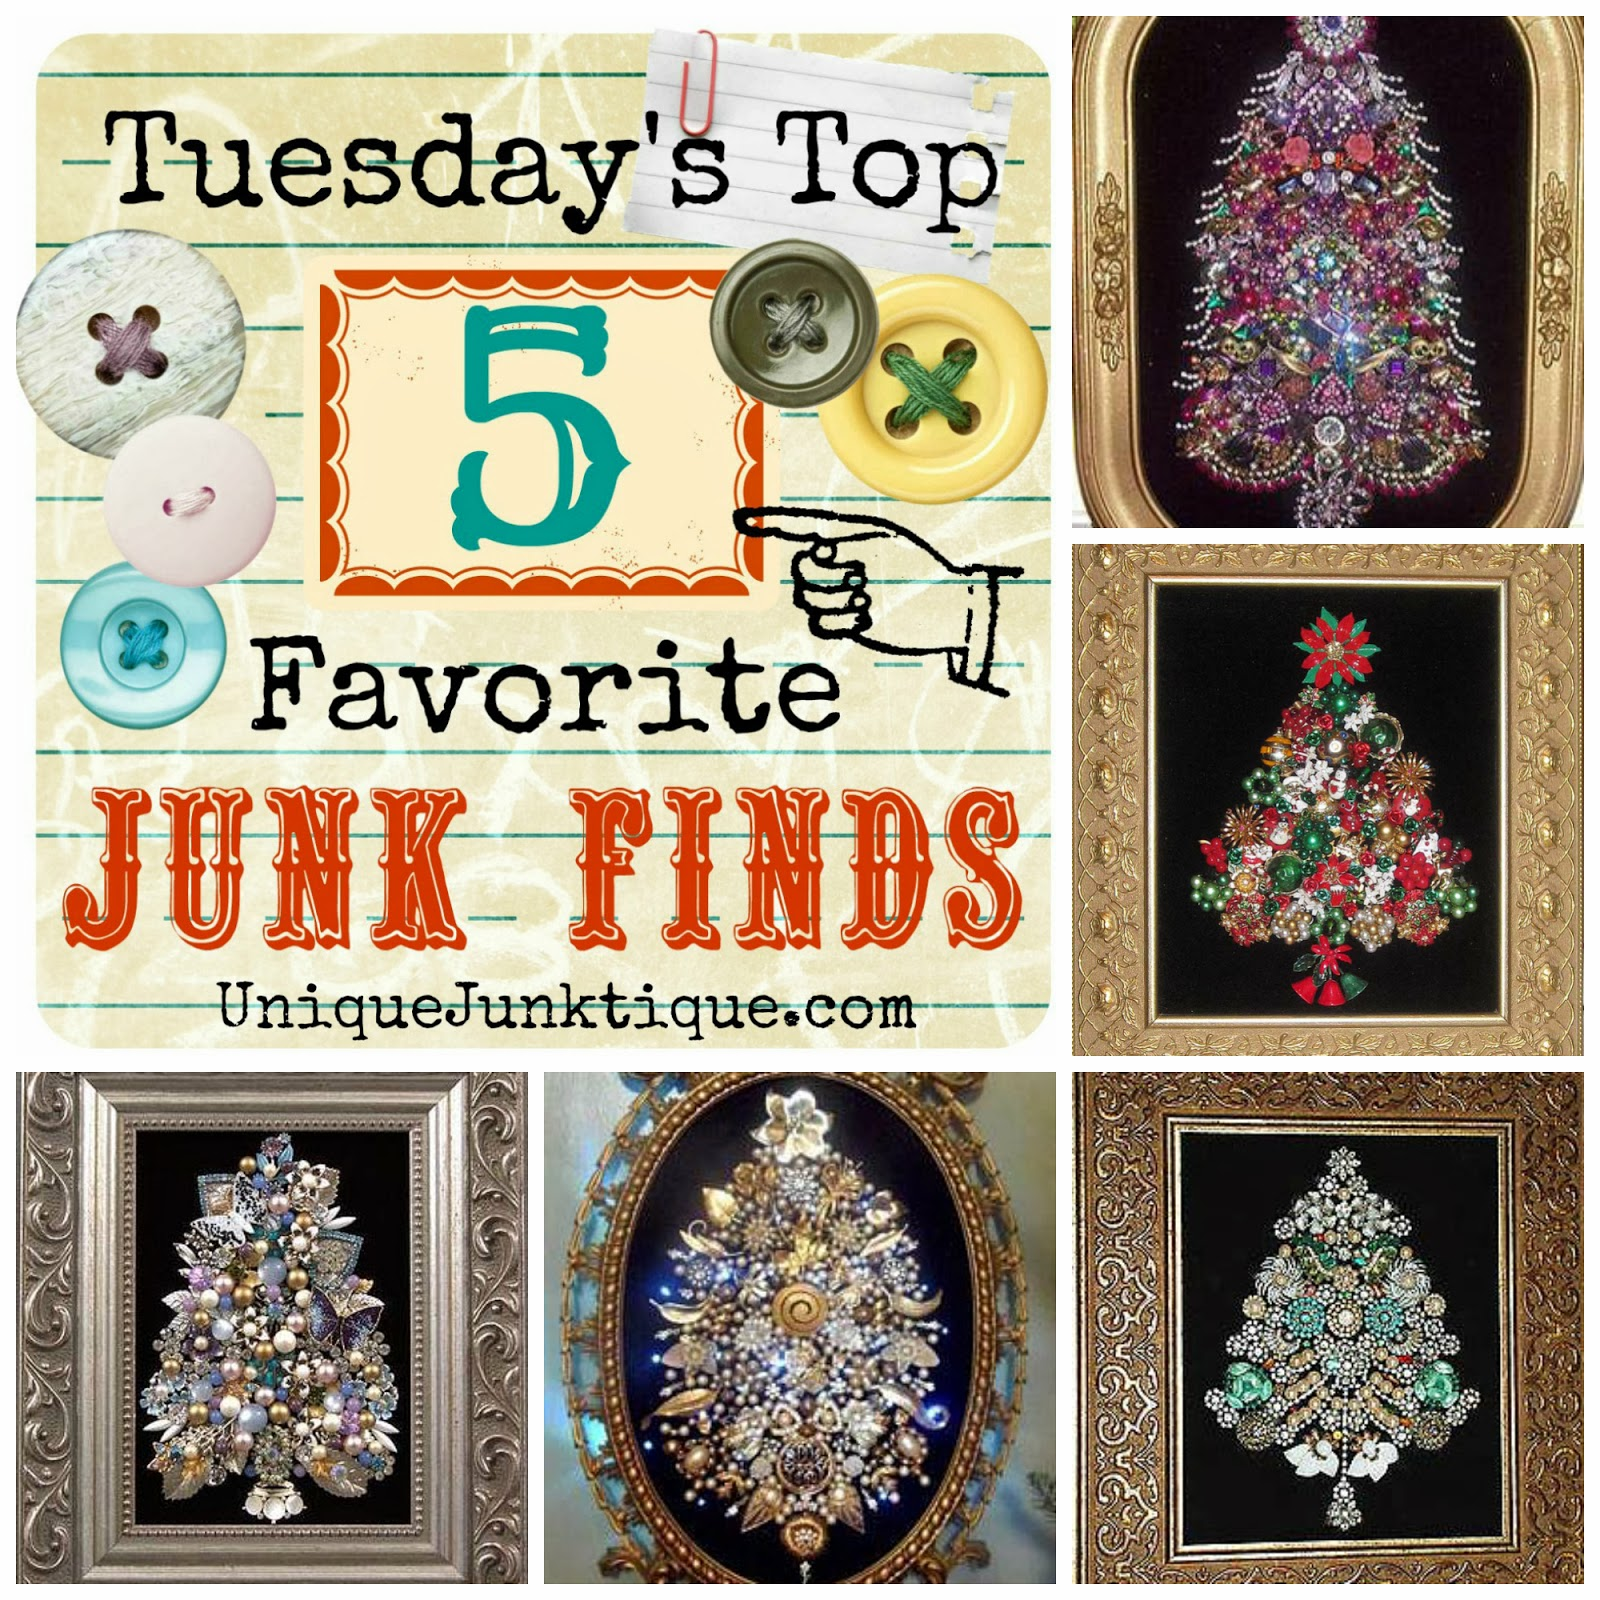 Tuesday's Top Five Favorite Junk Finds #13 Featuring Vintage Jewelry Tree Art